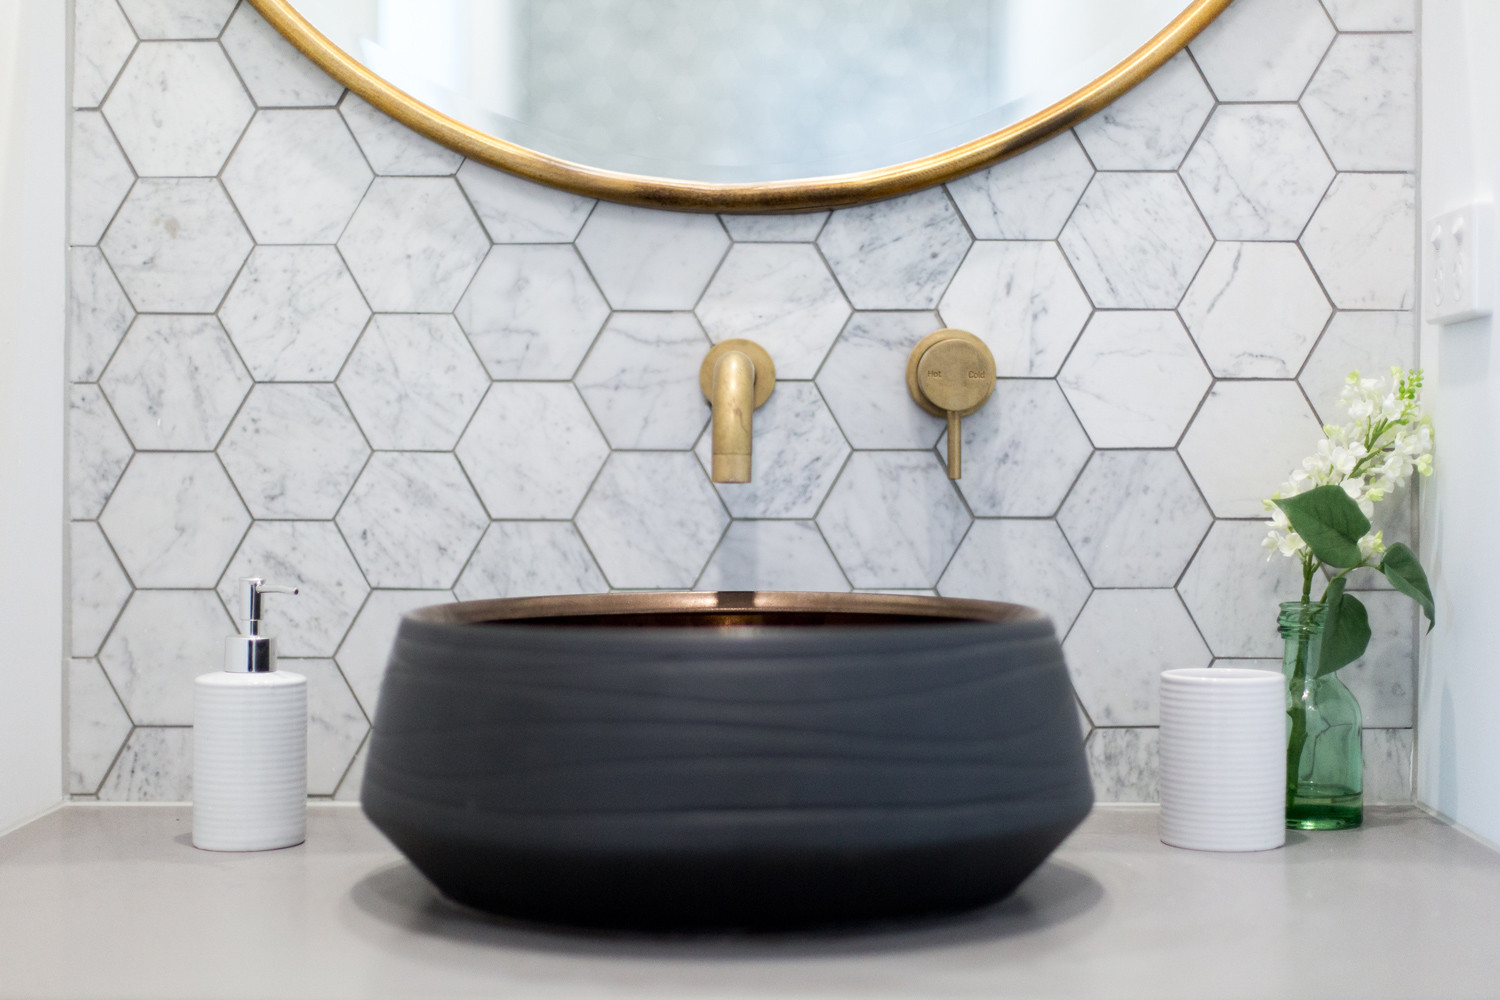 Top 10 Inspiring Bathroom Tile Trends for 2019 | Westside